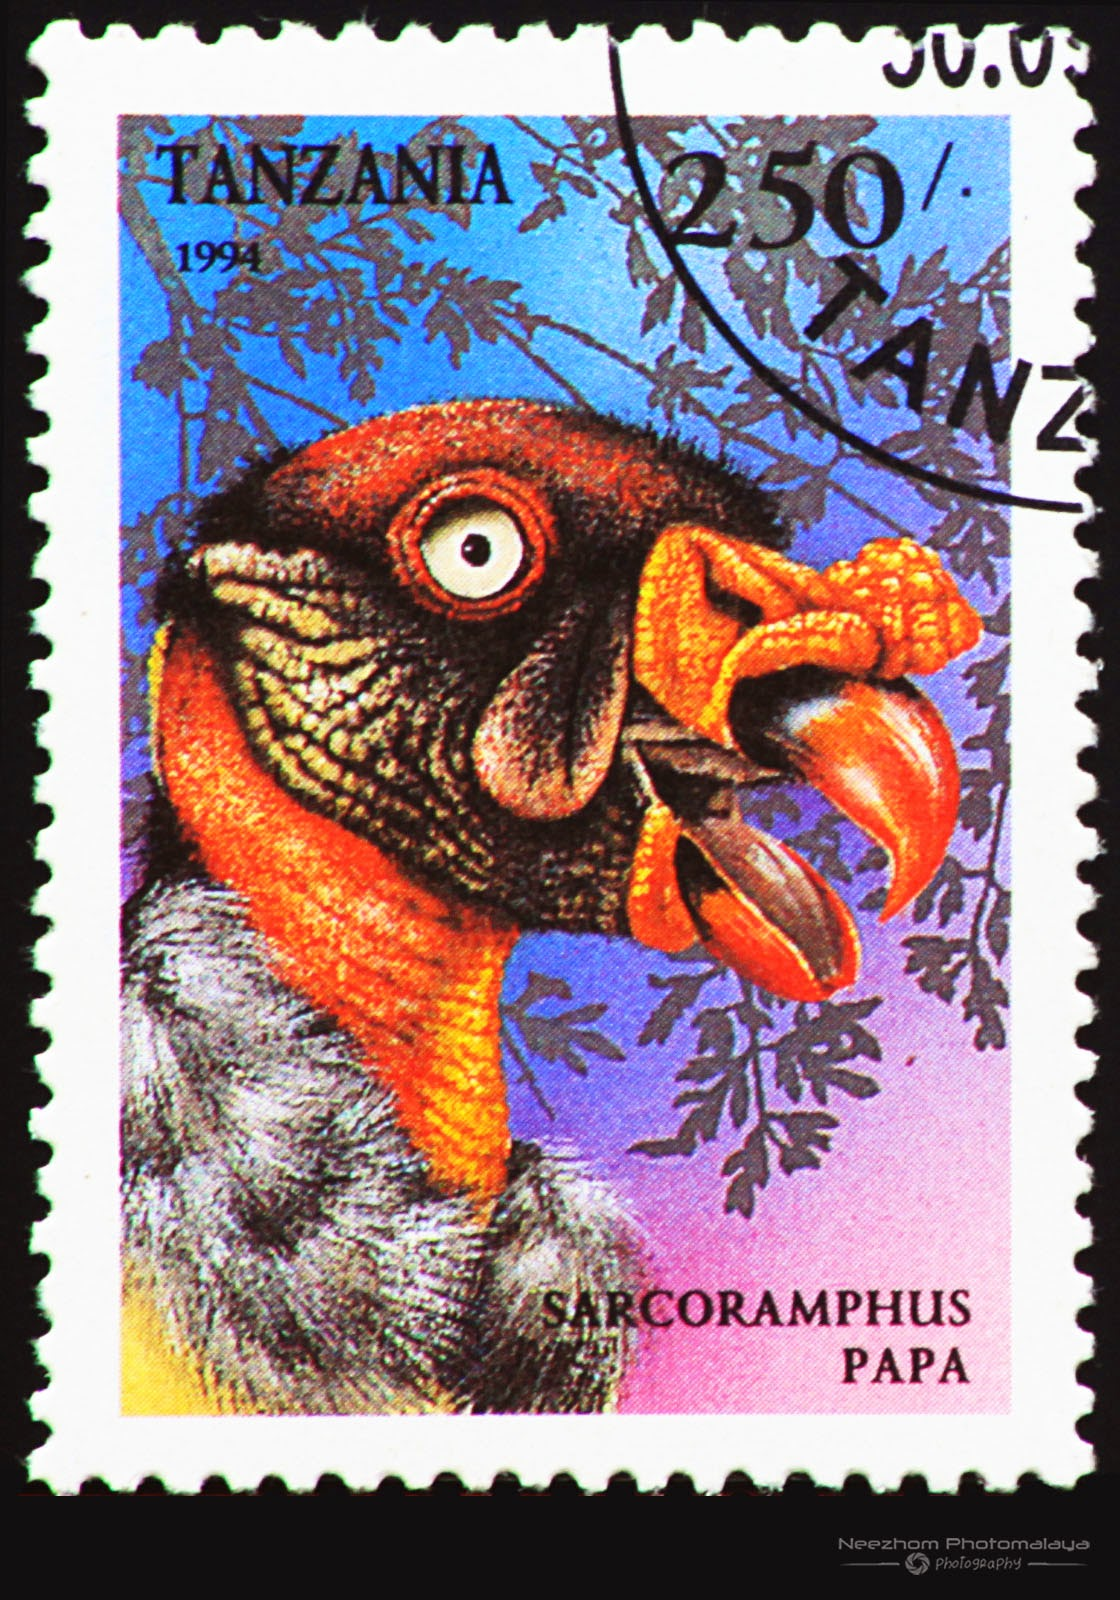 Tanzania 1994 Birds of Prey stamp - King Vulture (Sarcoramphus papa) 250 s